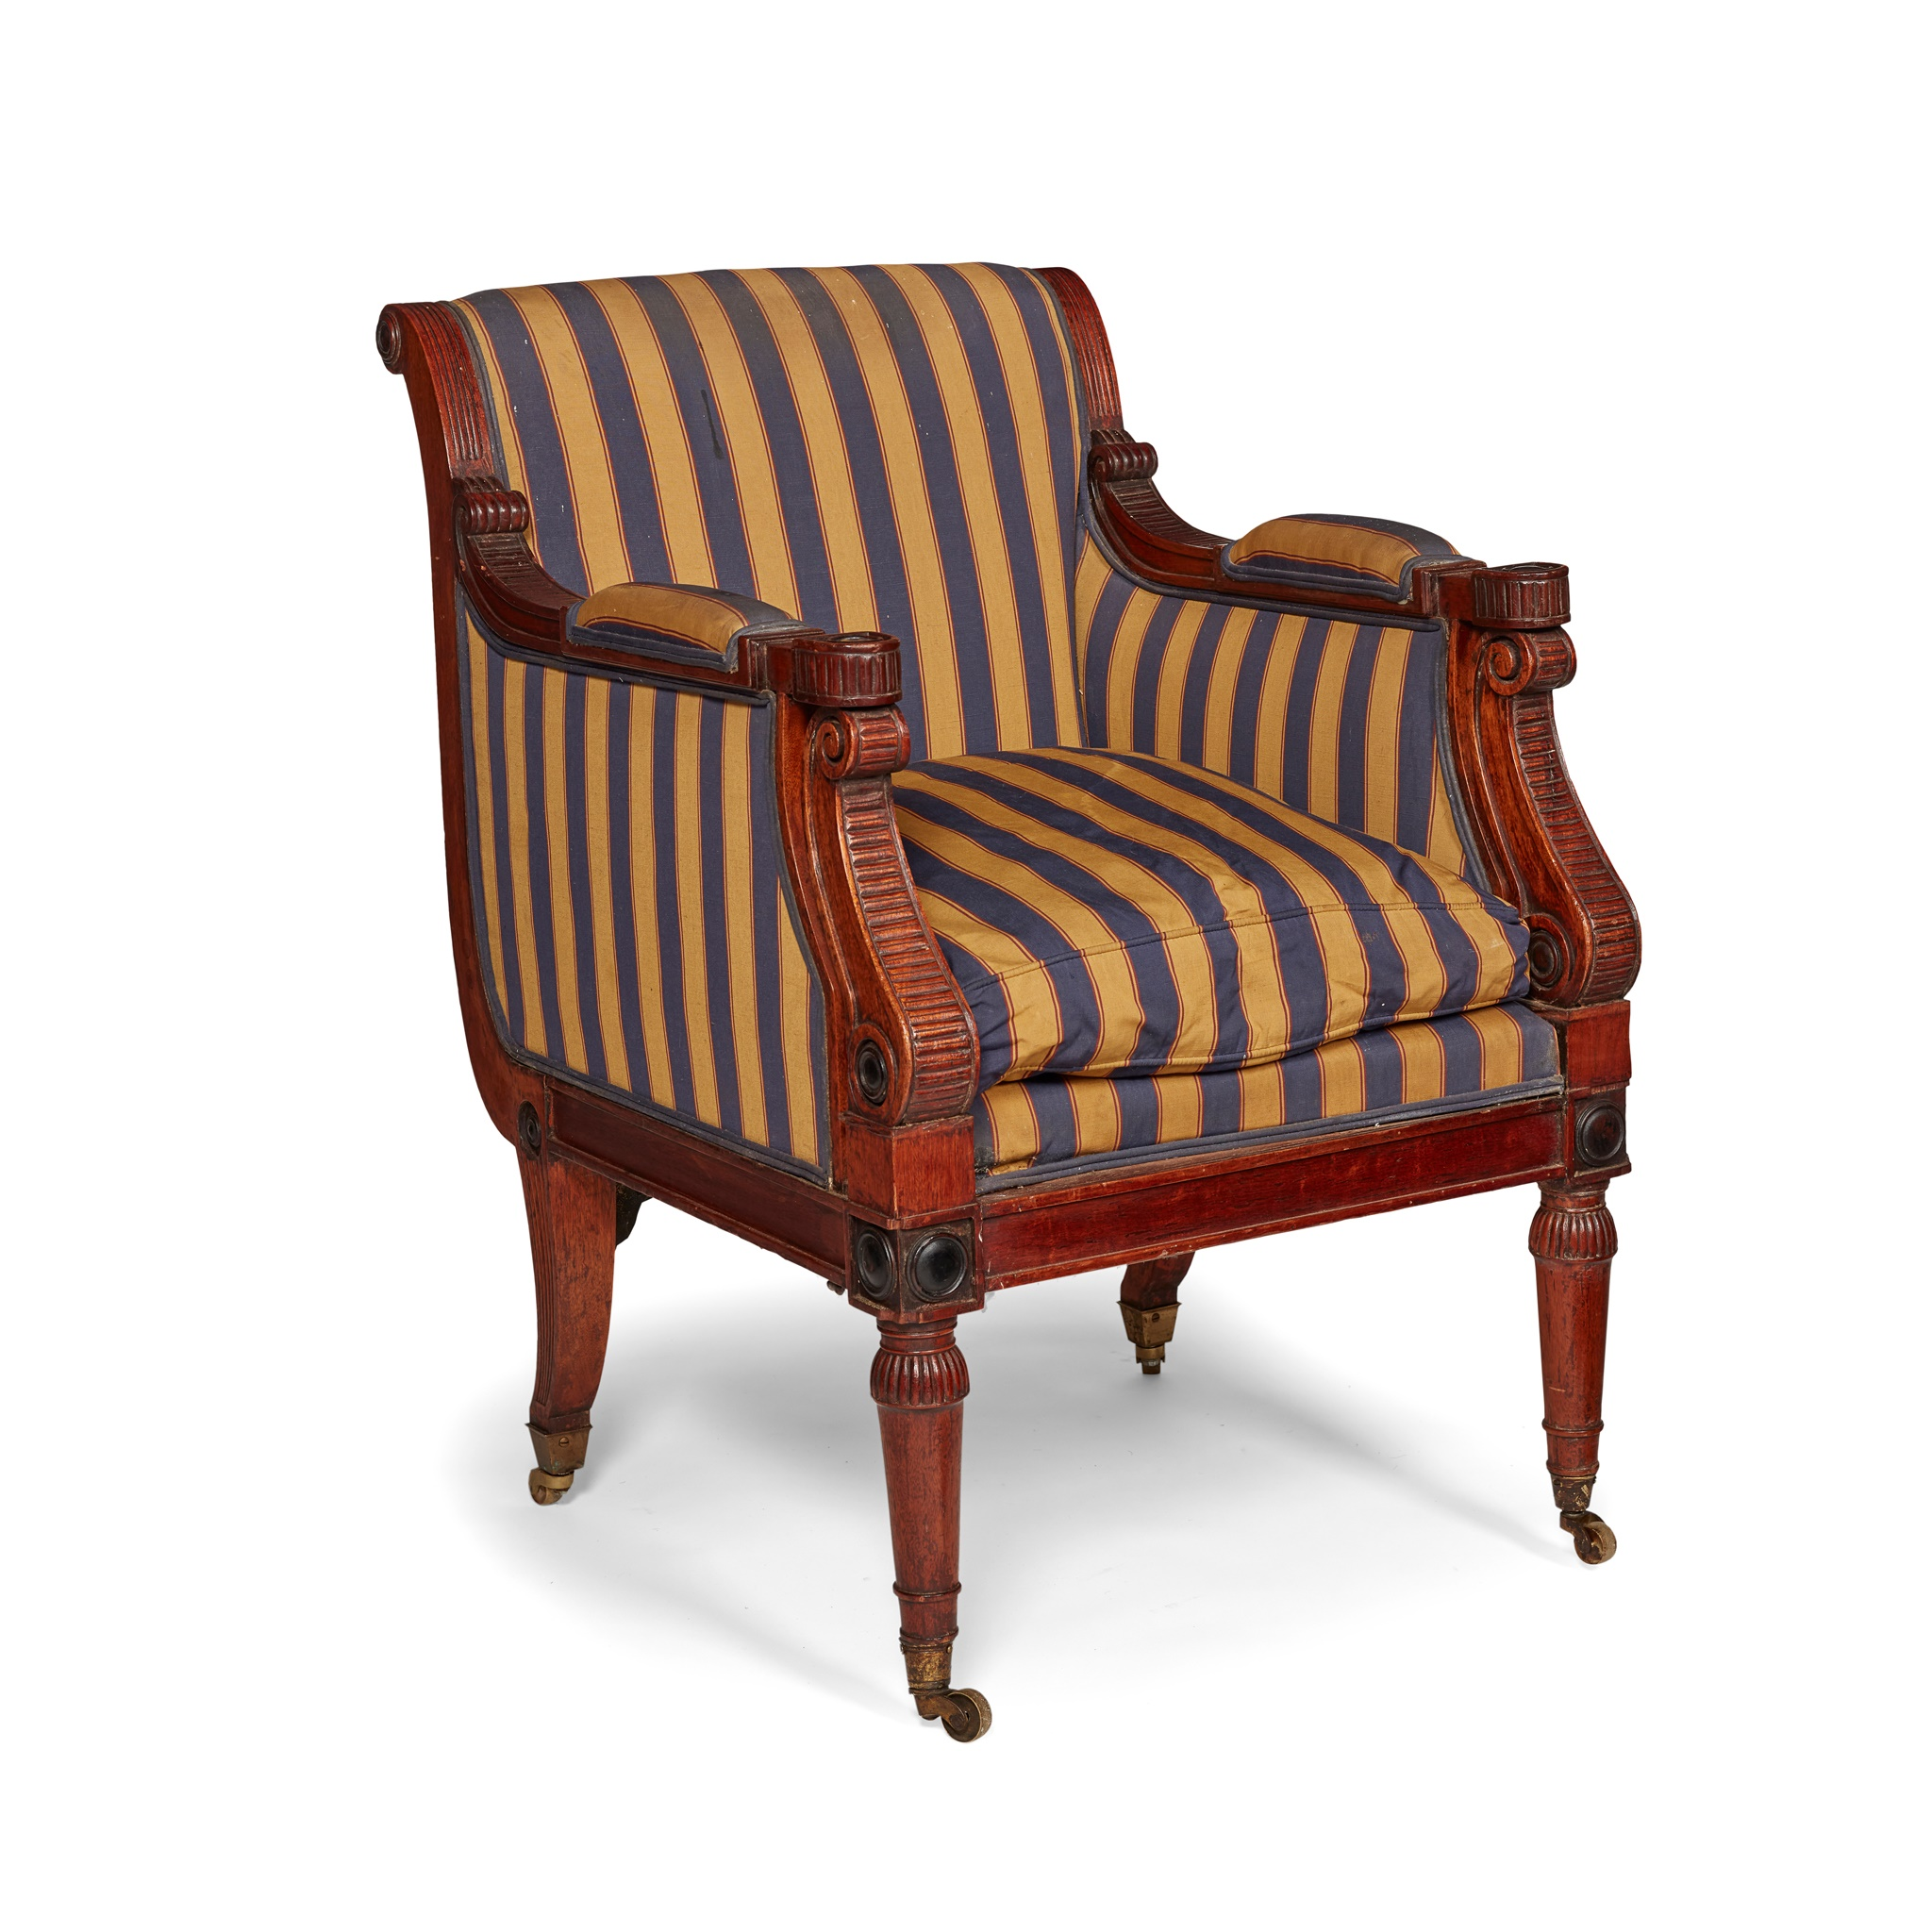 REGENCY OAK AND EBONISED LIBRARY ARMCHAIR, IN THE MANNER OF GEORGE BULLOCK EARLY 19TH CENTURY